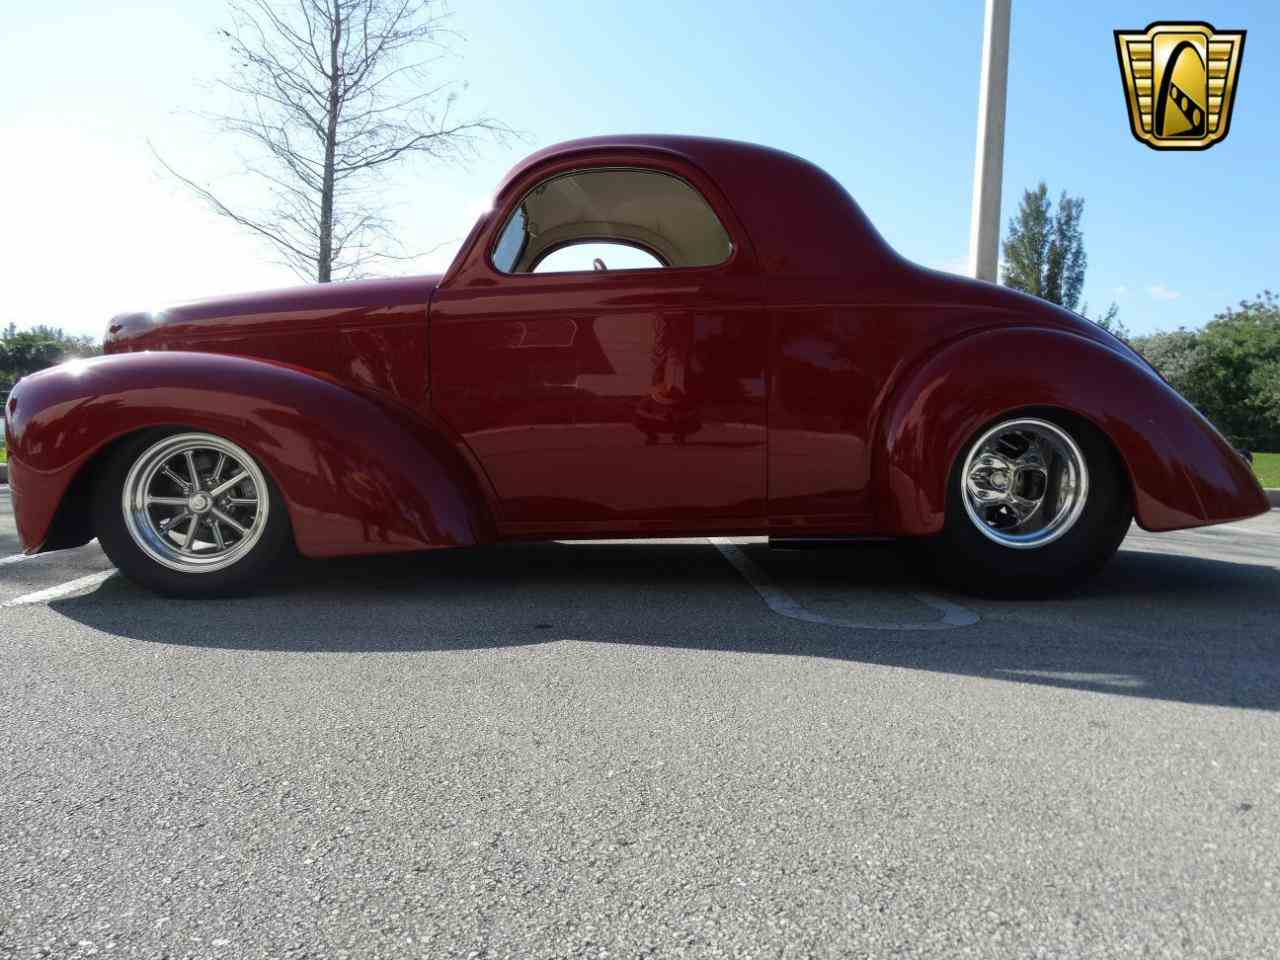 Large Picture of 1941 Willys Coupe located in Coral Springs Florida - $79,000.00 Offered by Gateway Classic Cars - Fort Lauderdale - KEYP